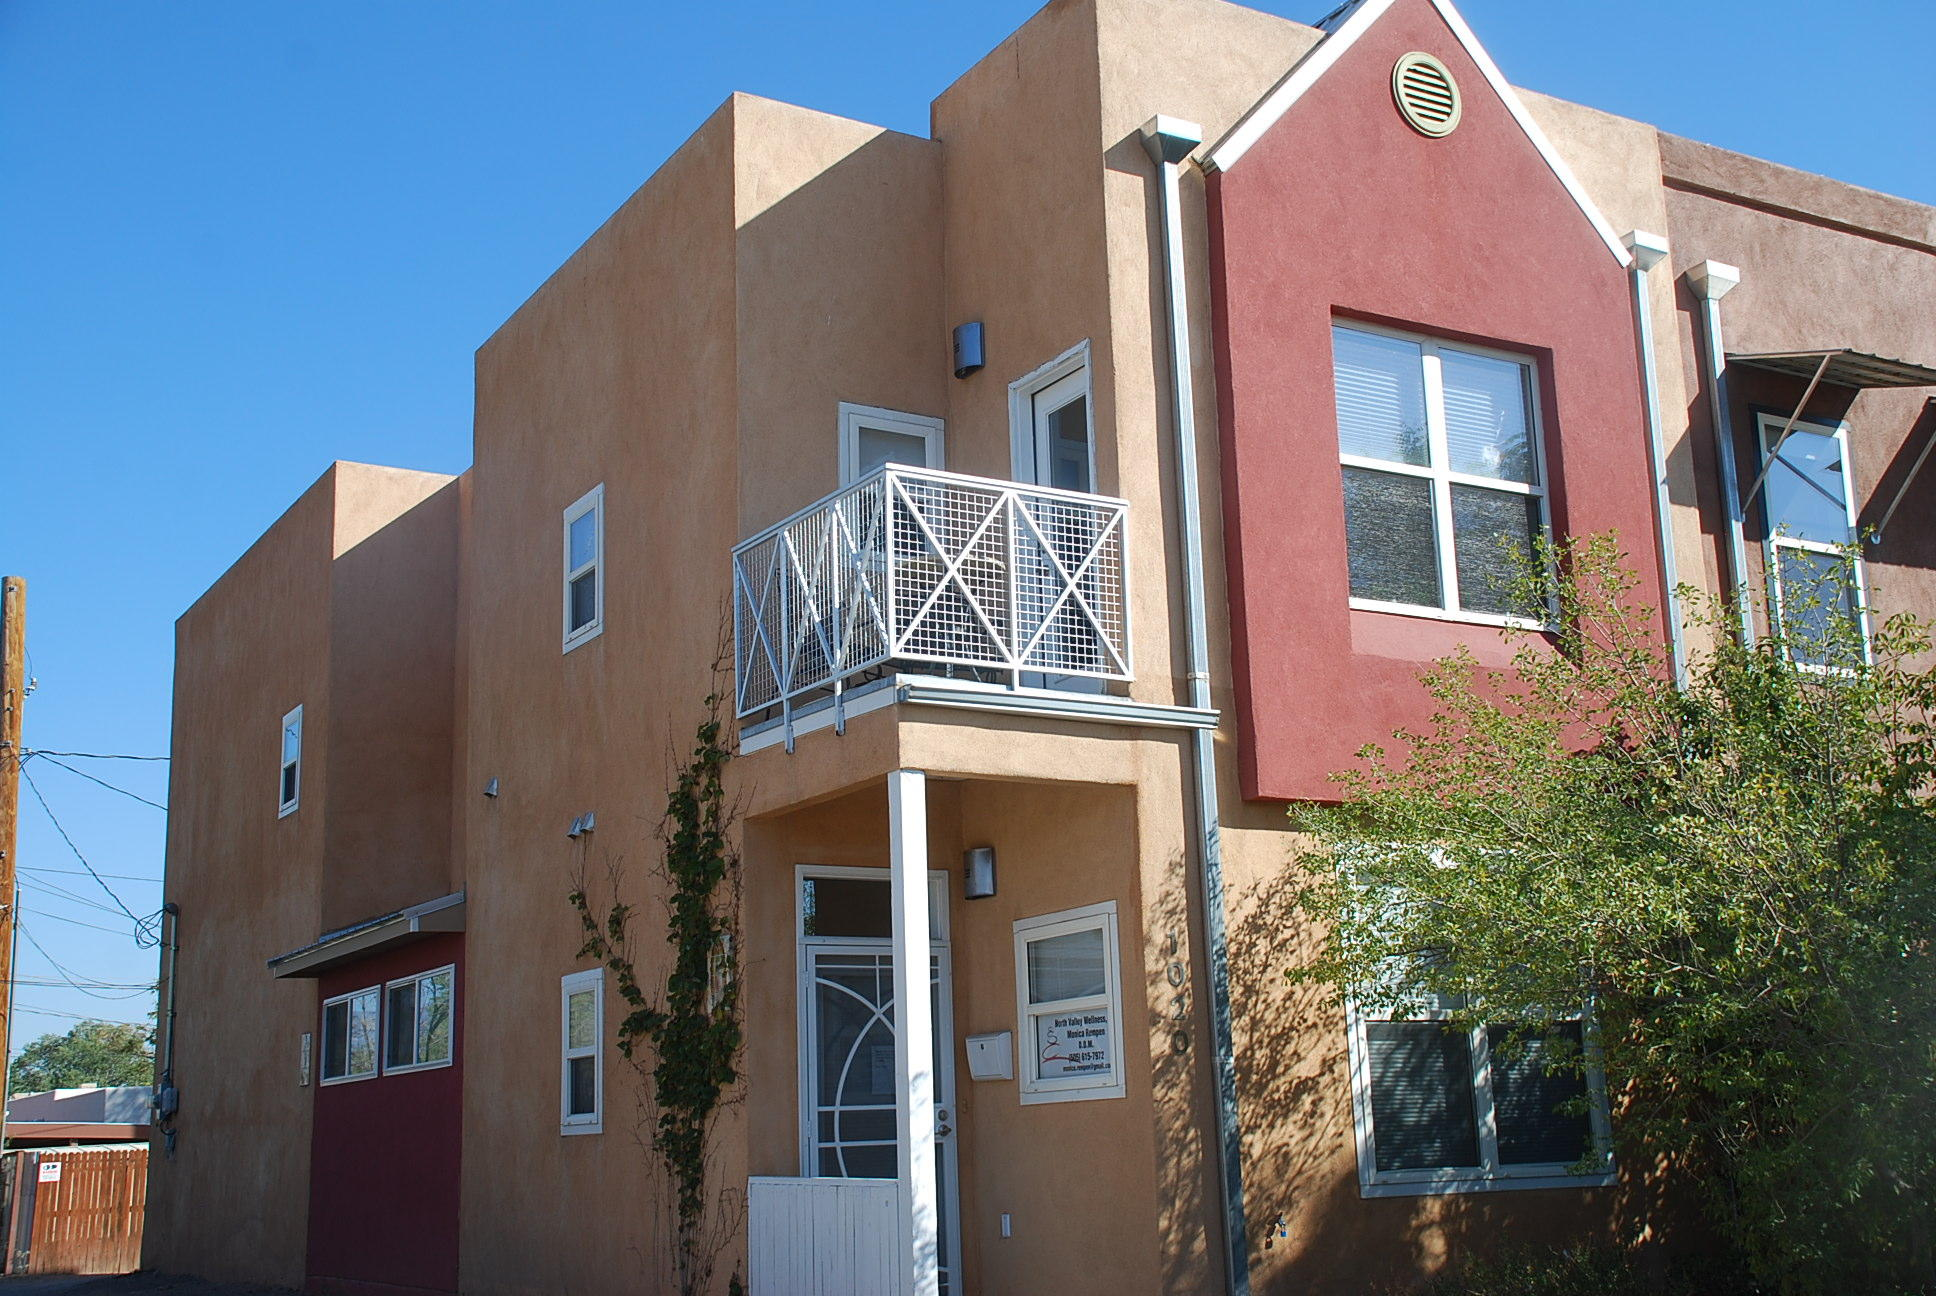 OFFERED AT $7,000 BELOW APPRAISAL! Modern, bright, and well kept townhome in a convenient location close to downtown, restaurants, breweries, cultural attractions. 3 bedrooms, 2 1/2 baths, 1-car garage plus carport. Upstairs wood floors, bedroom with mountain views and walk-in closet, kitchen has bar counter seating 3-4, 2 patios with city and mountain views. Ground floor stained concrete floors, office, 2 bedrooms. NO HOA. Zoned MX-L. Perfect home office,  retail, clinic, legal.